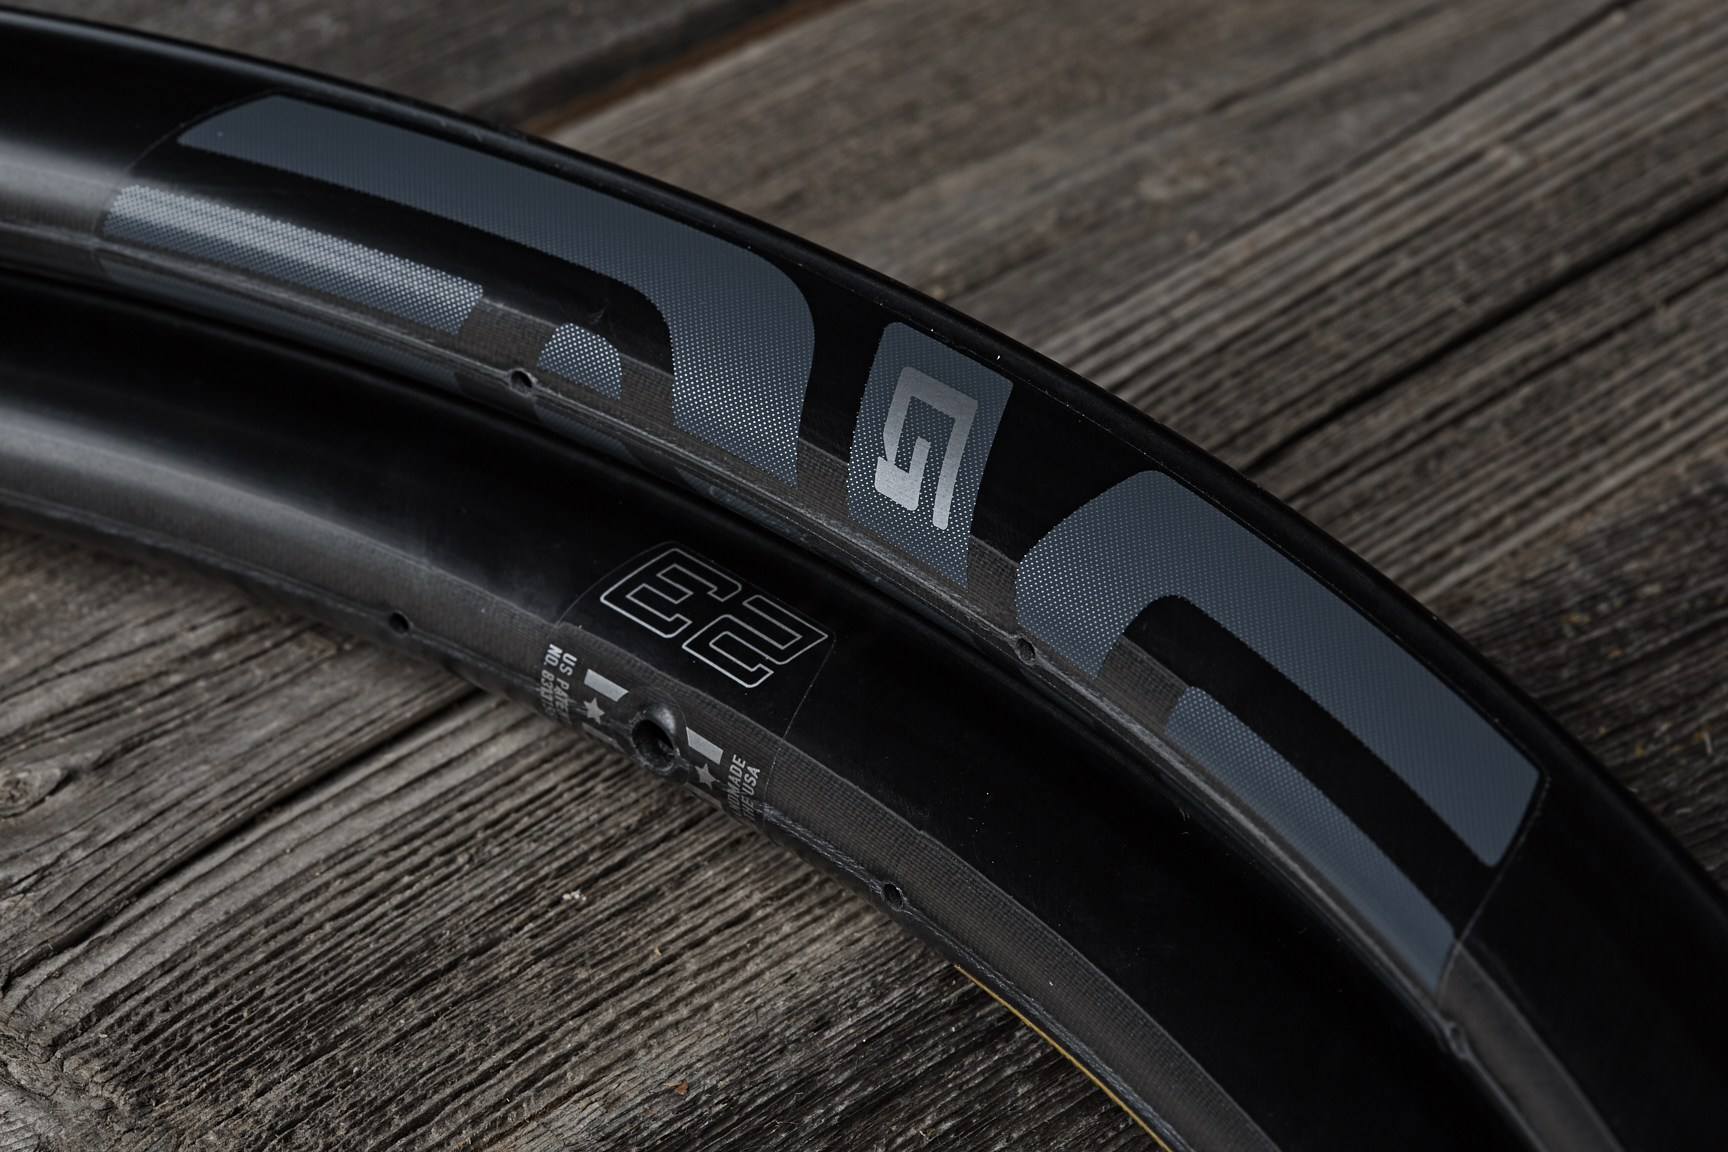 Enve's new G23 disc gravel rim spins up quickly with a featherweight of just 330 grams. Molded spoke beds enable a wafer thin spoke nipple seat that utilises their proprietary 11mm brass spoke nipple. 330 grams pushes the envelope of what can be achieved in a gravel rim designed especially for competitive riders.